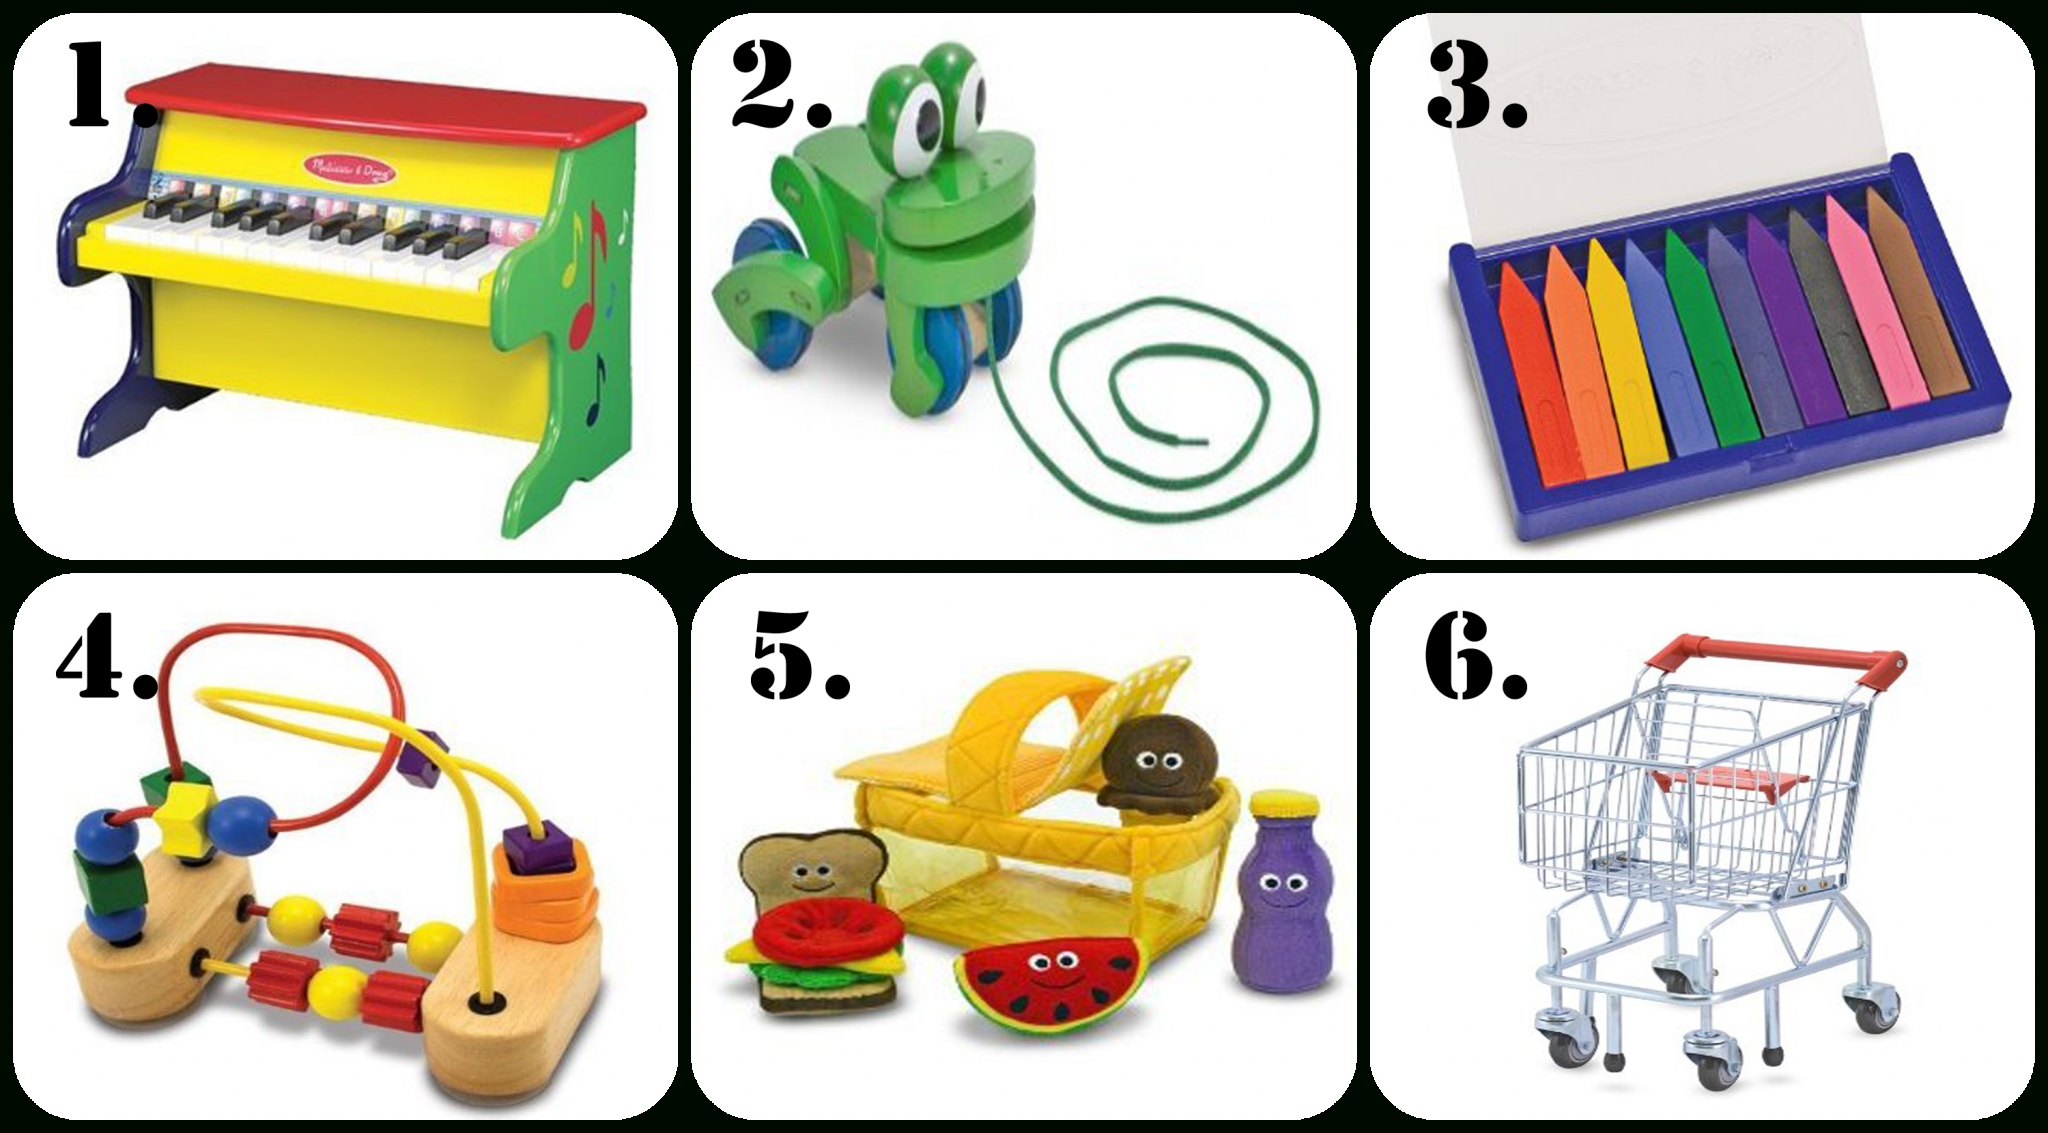 10 Wonderful 2 Year Old Birthday Gift Ideas Boy Themes For 3